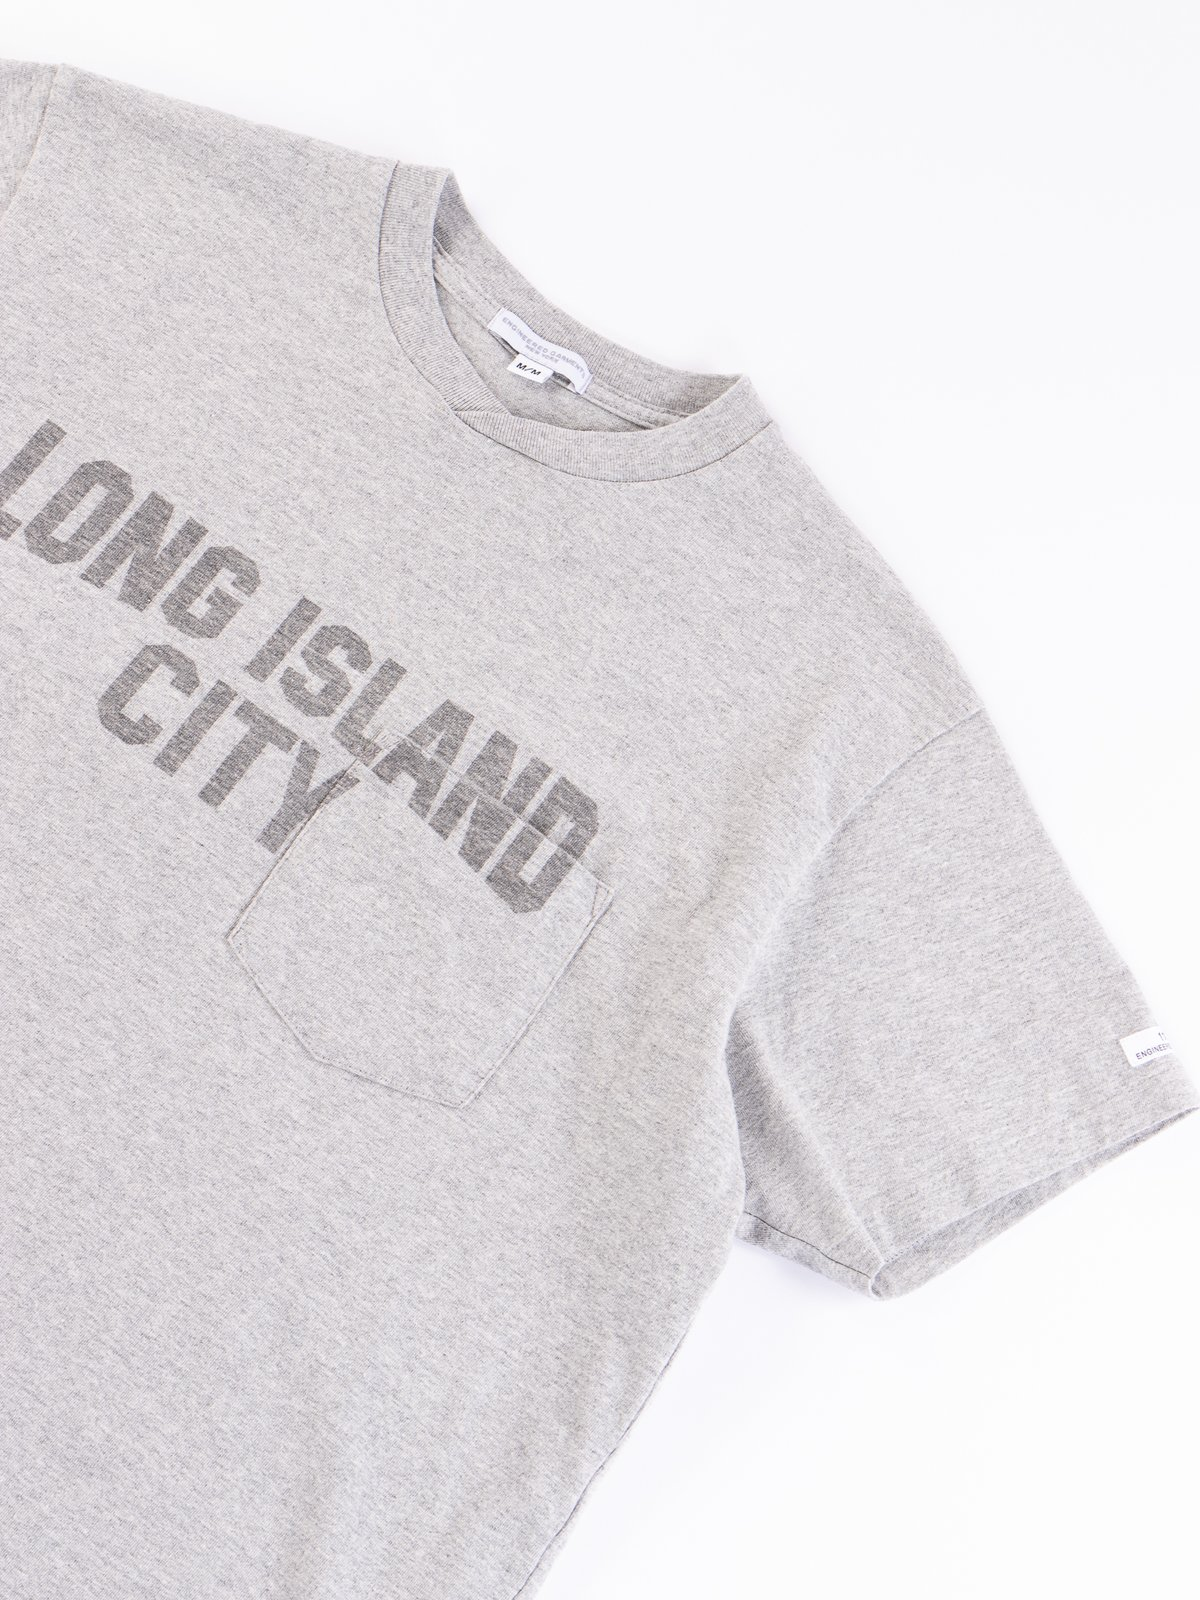 Grey Long Island City Printed T–Shirt - Image 4